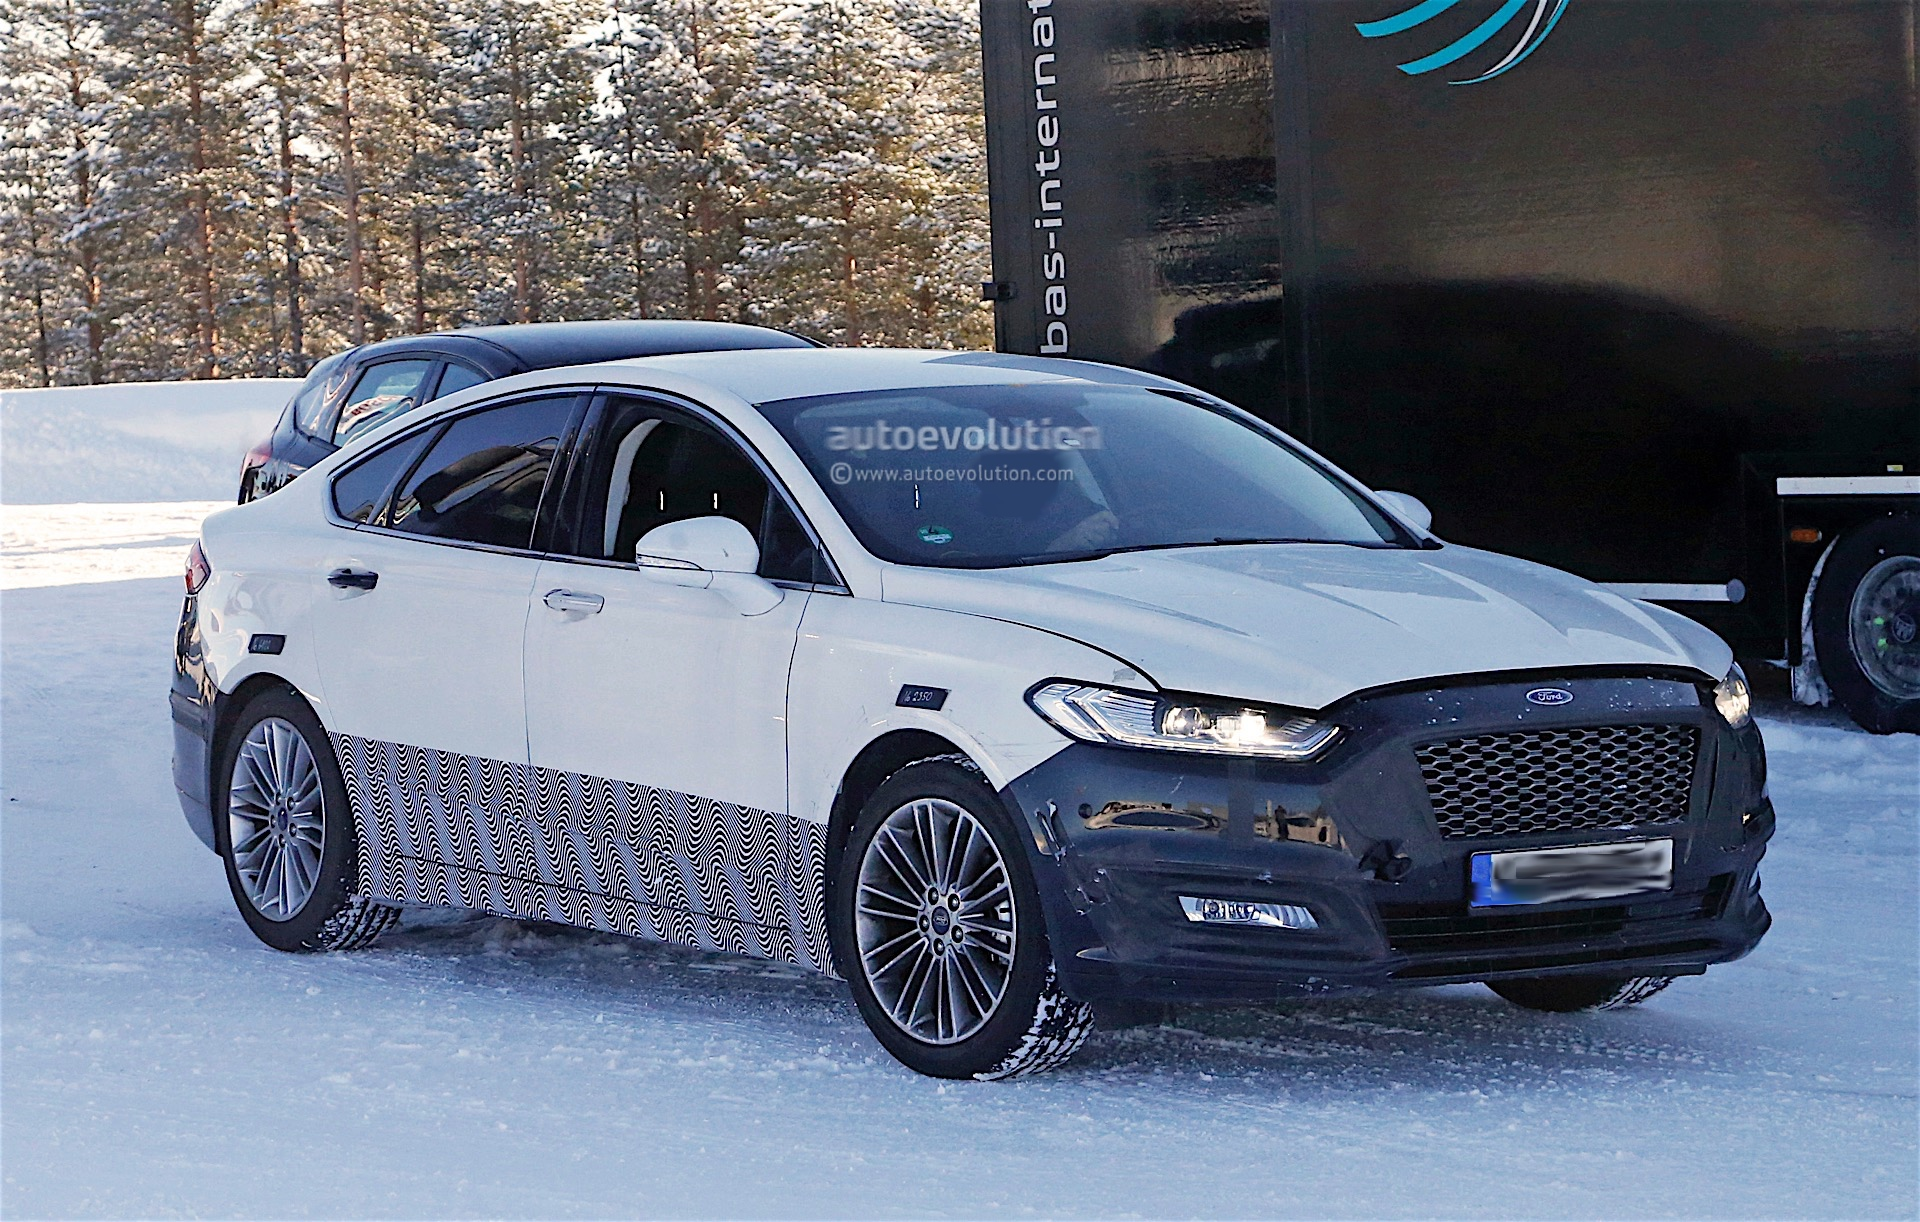 2017 Ford Mondeo Facelift Spyshots Reveal Refreshed Lights and Bumpers ...